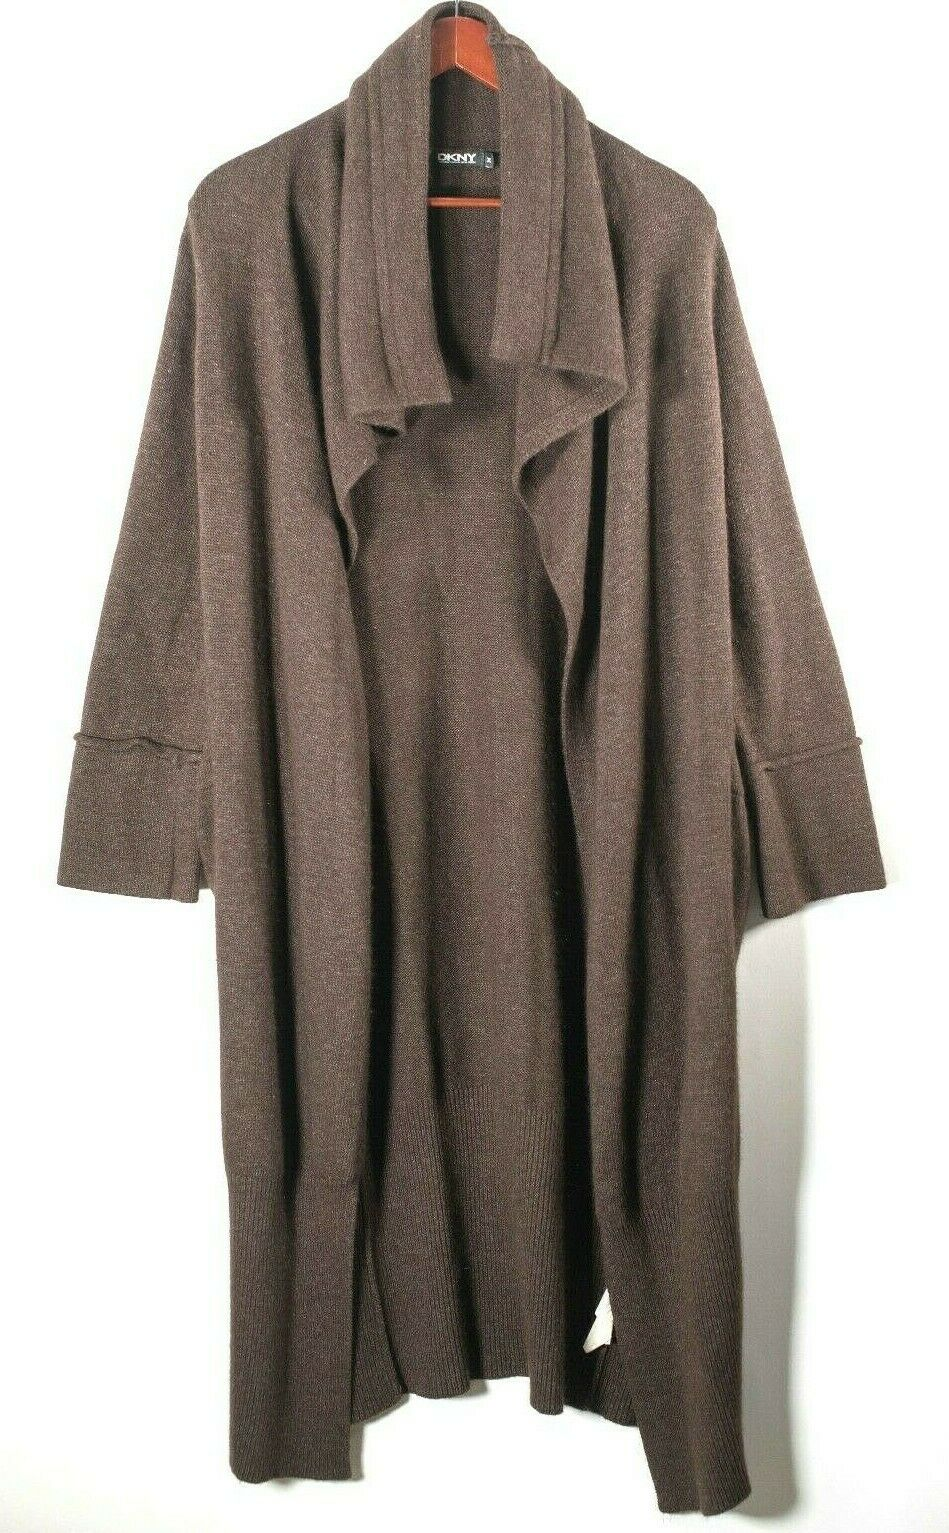 Pure DKNY Womens Medium Brown Cardigan Longline Open Waterfall Soft Knit Maxi